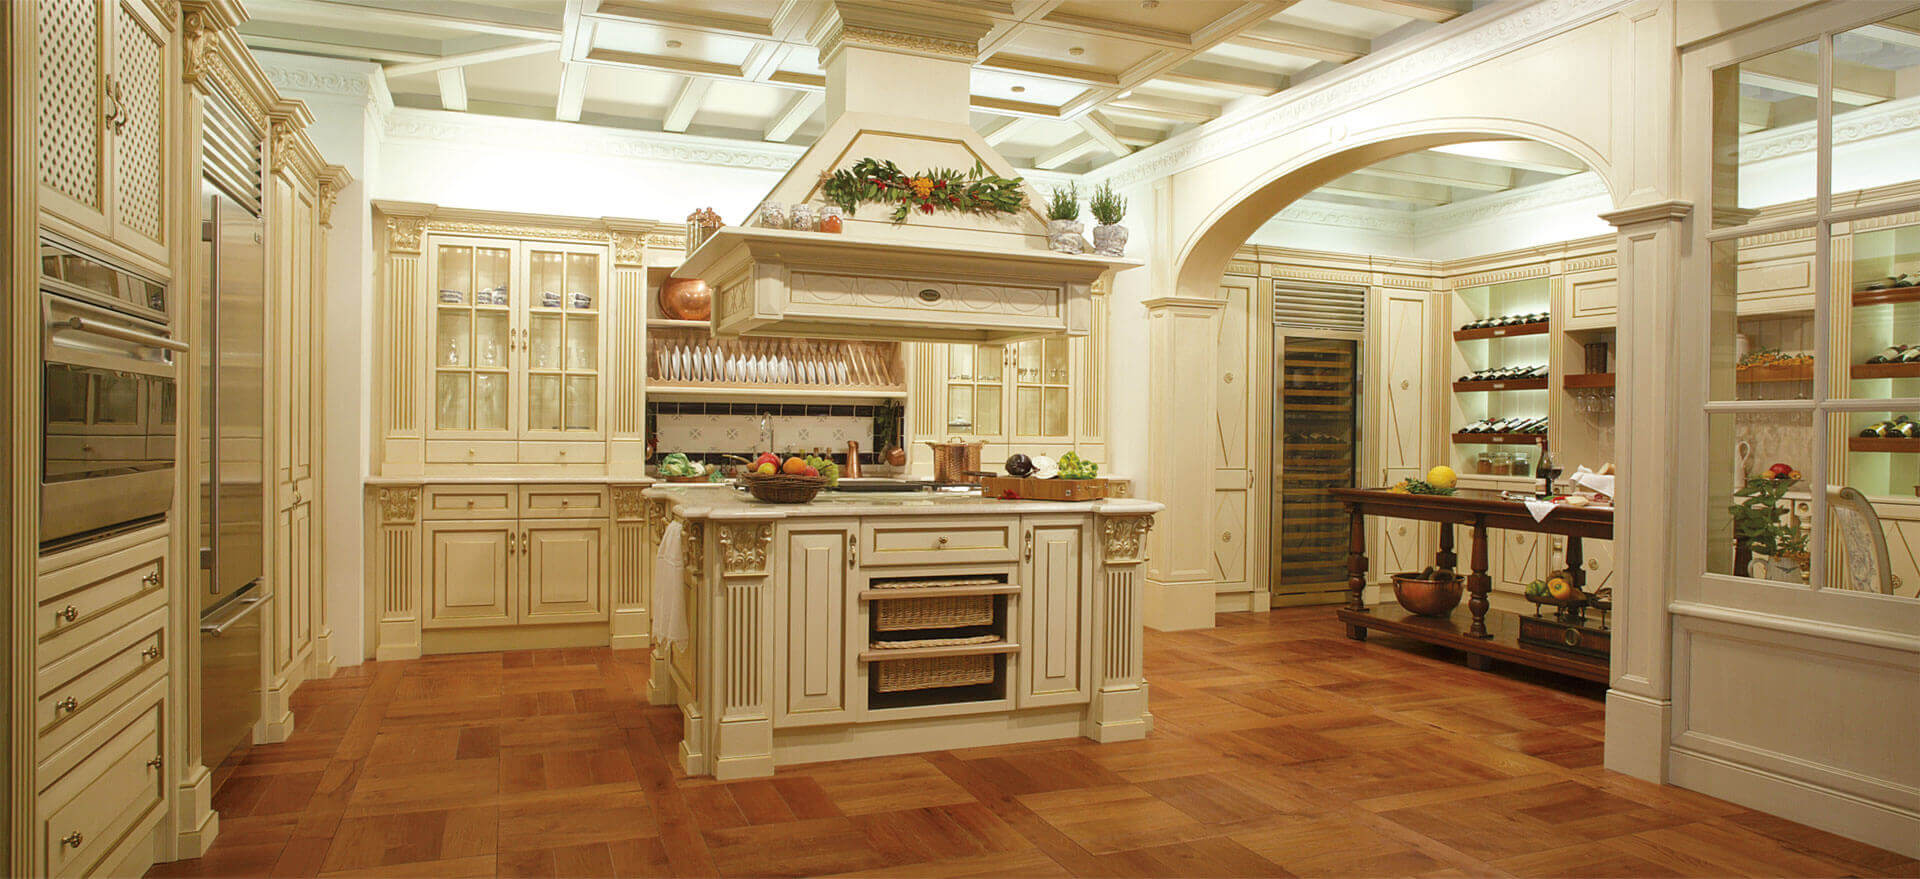 luxury classic kitchen design